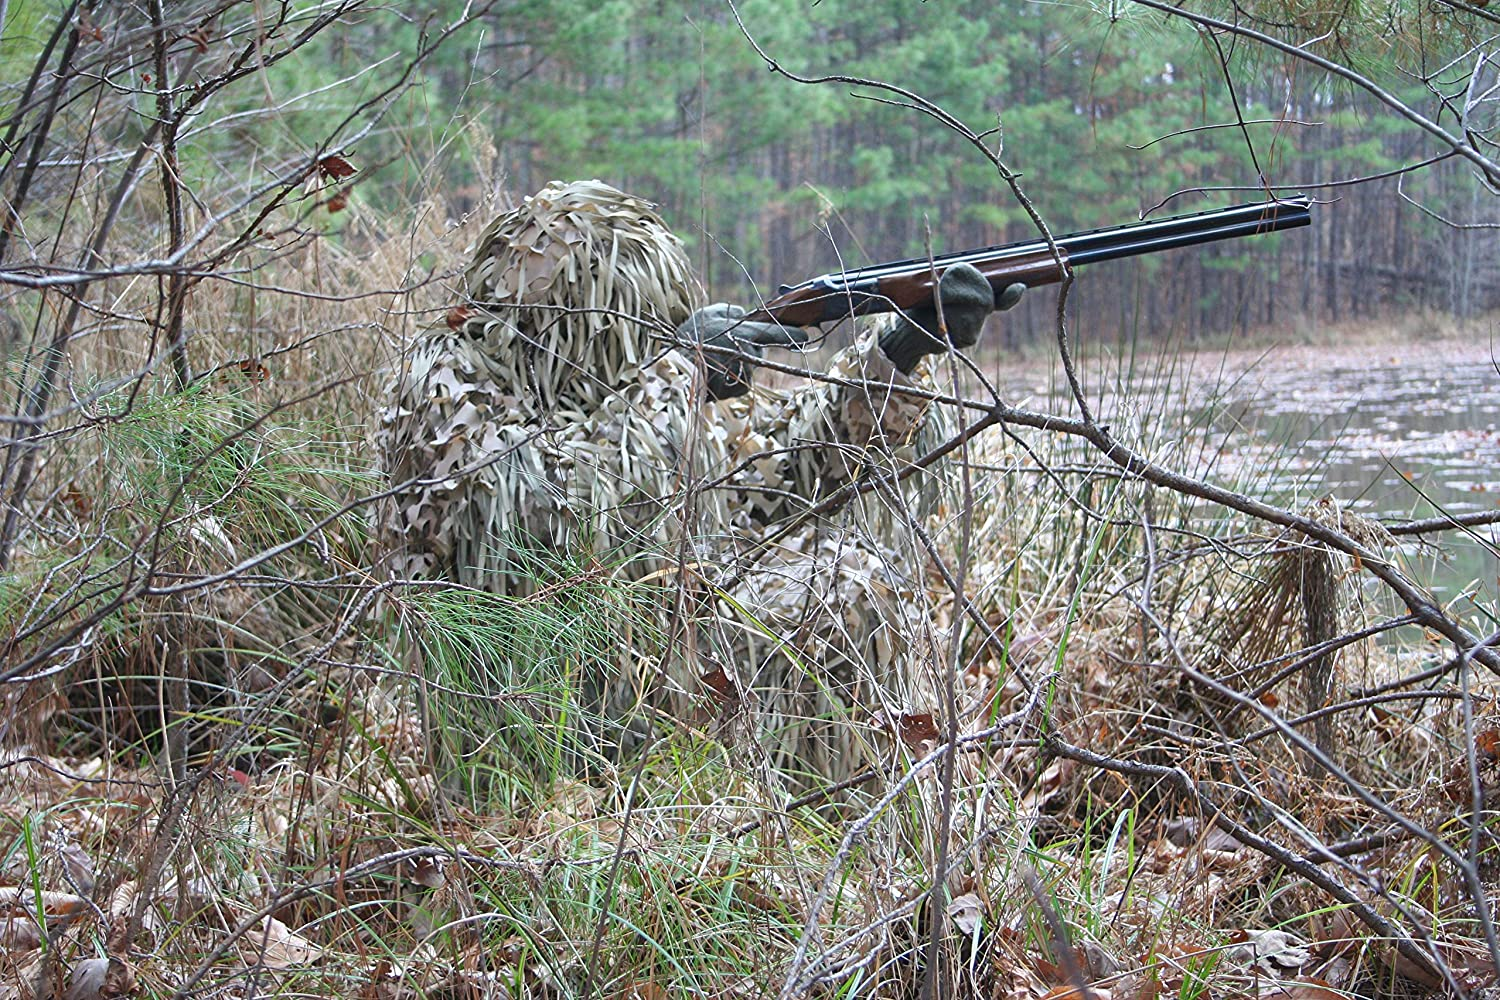 Ghillie Short Hooded Jacket with Trousers CamoSystems Jackal Sniper Suits